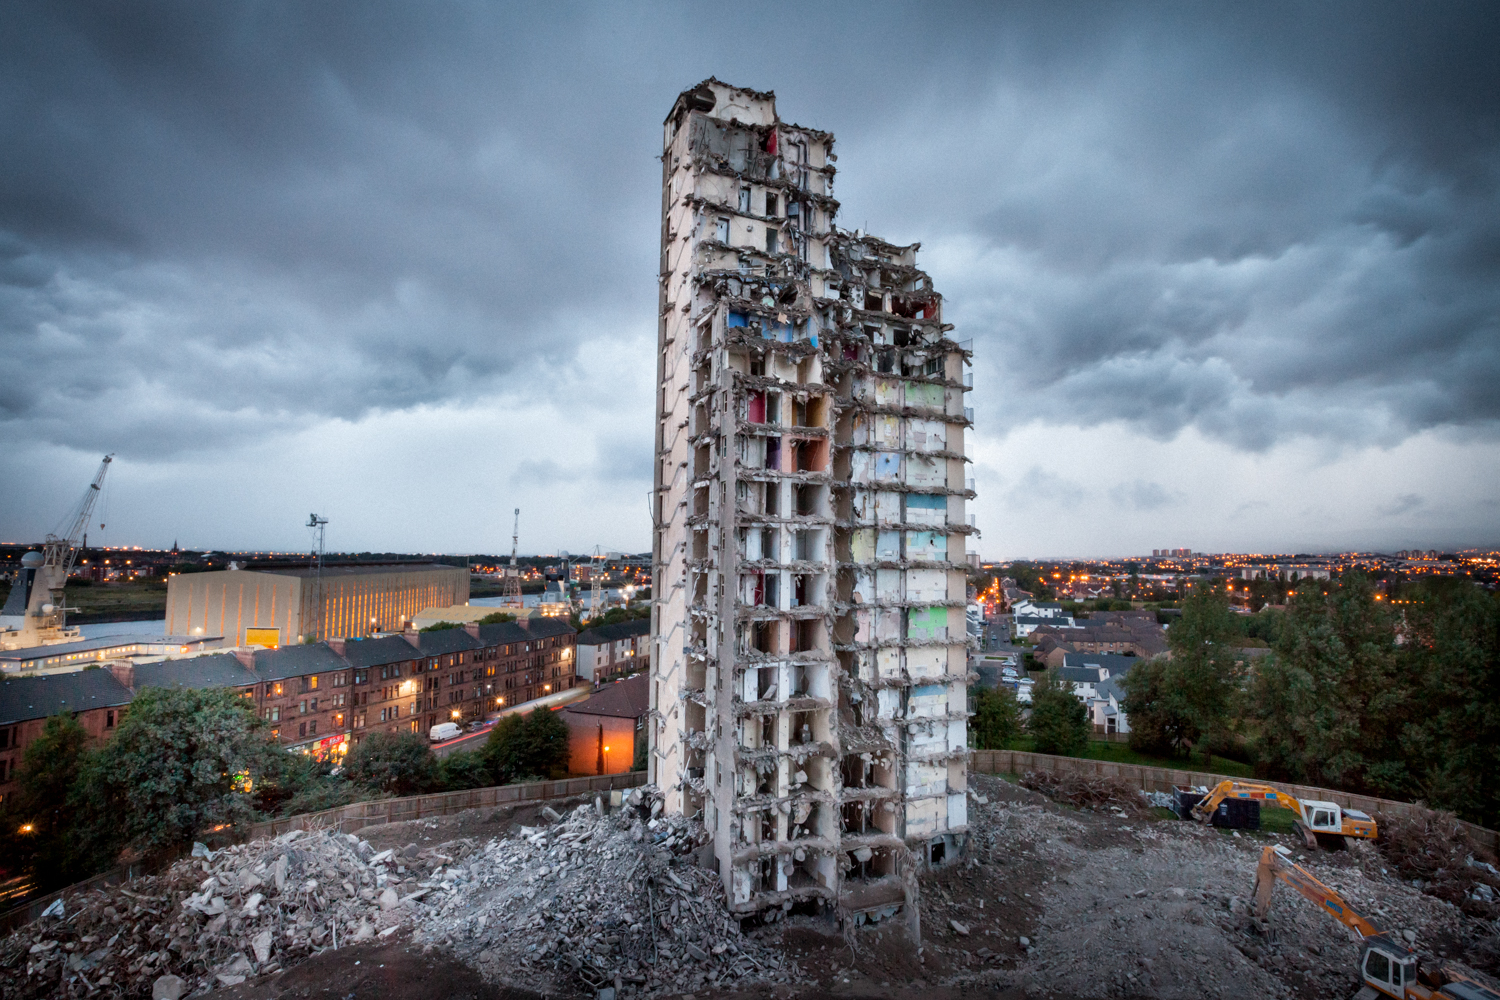 CL_Disappearing_Glasgow-3.jpg